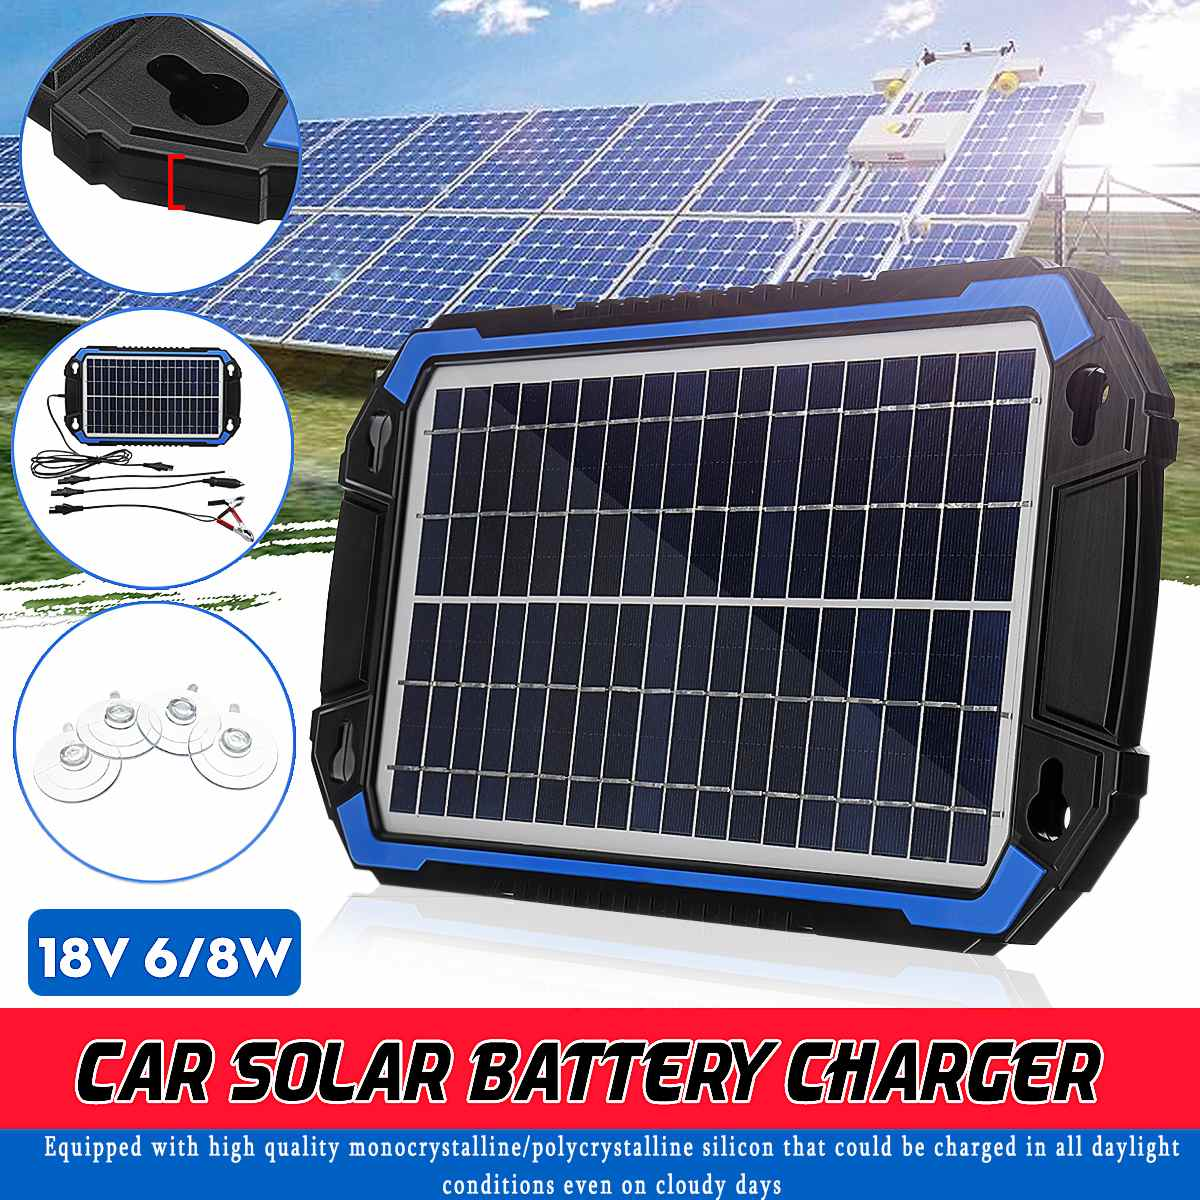 18V 6W/8W Portable Solar Panel Power Car Battery Charger For Car Boat Charging Detachable Connection Multifunction-Protection18V 6W/8W Portable Solar Panel Power Car Battery Charger For Car Boat Charging Detachable Connection Multifunction-Protection